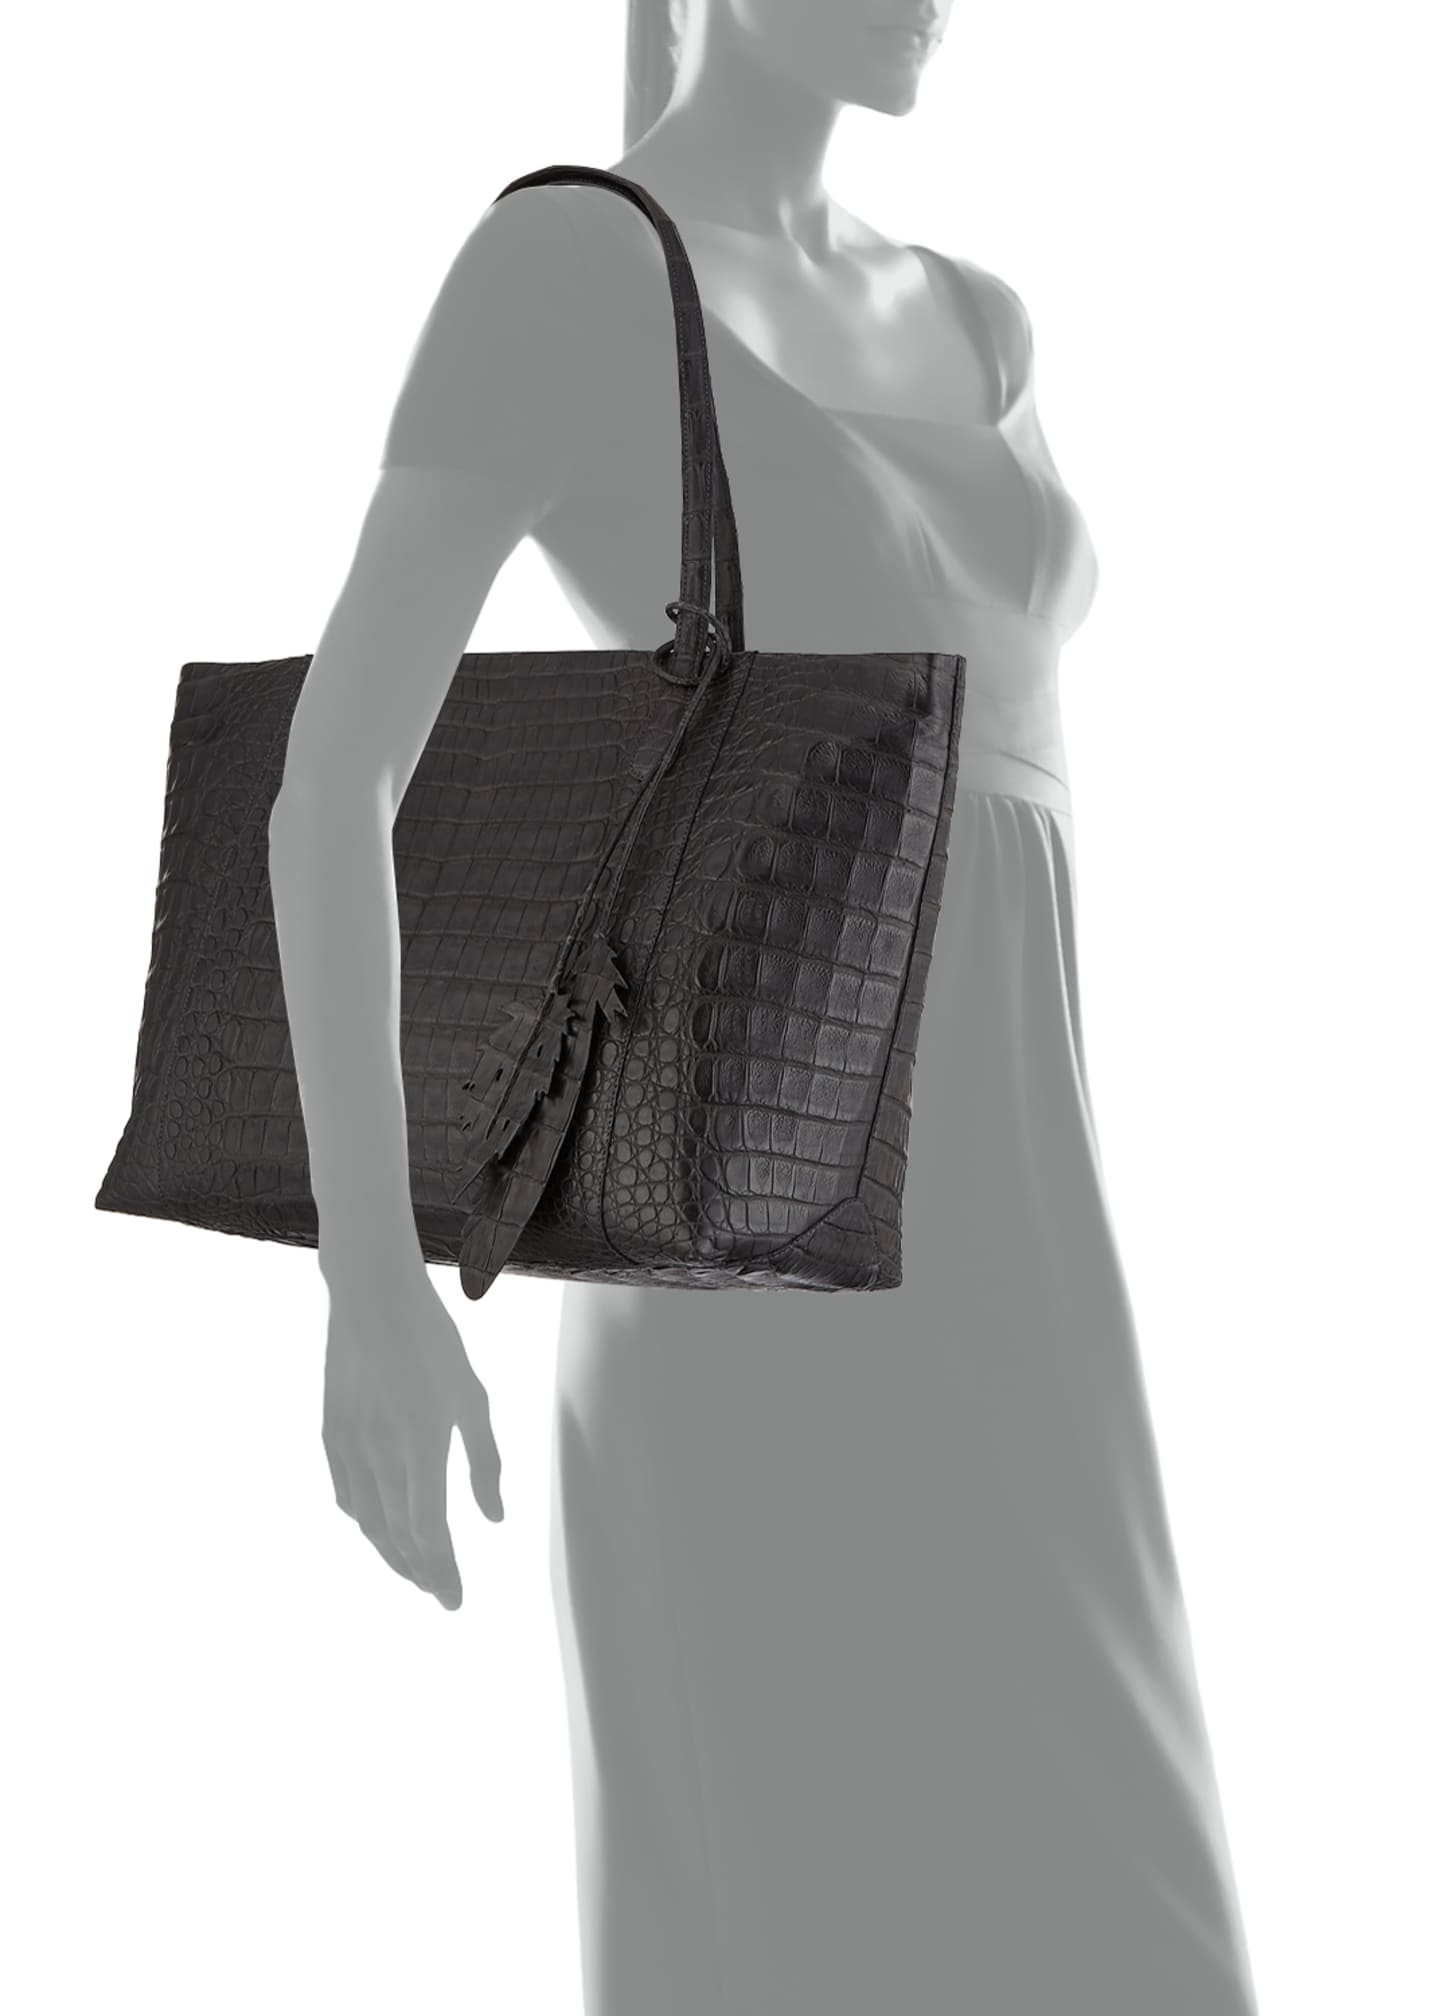 Image 3 of 3: Erica Crocodile Tote Bag